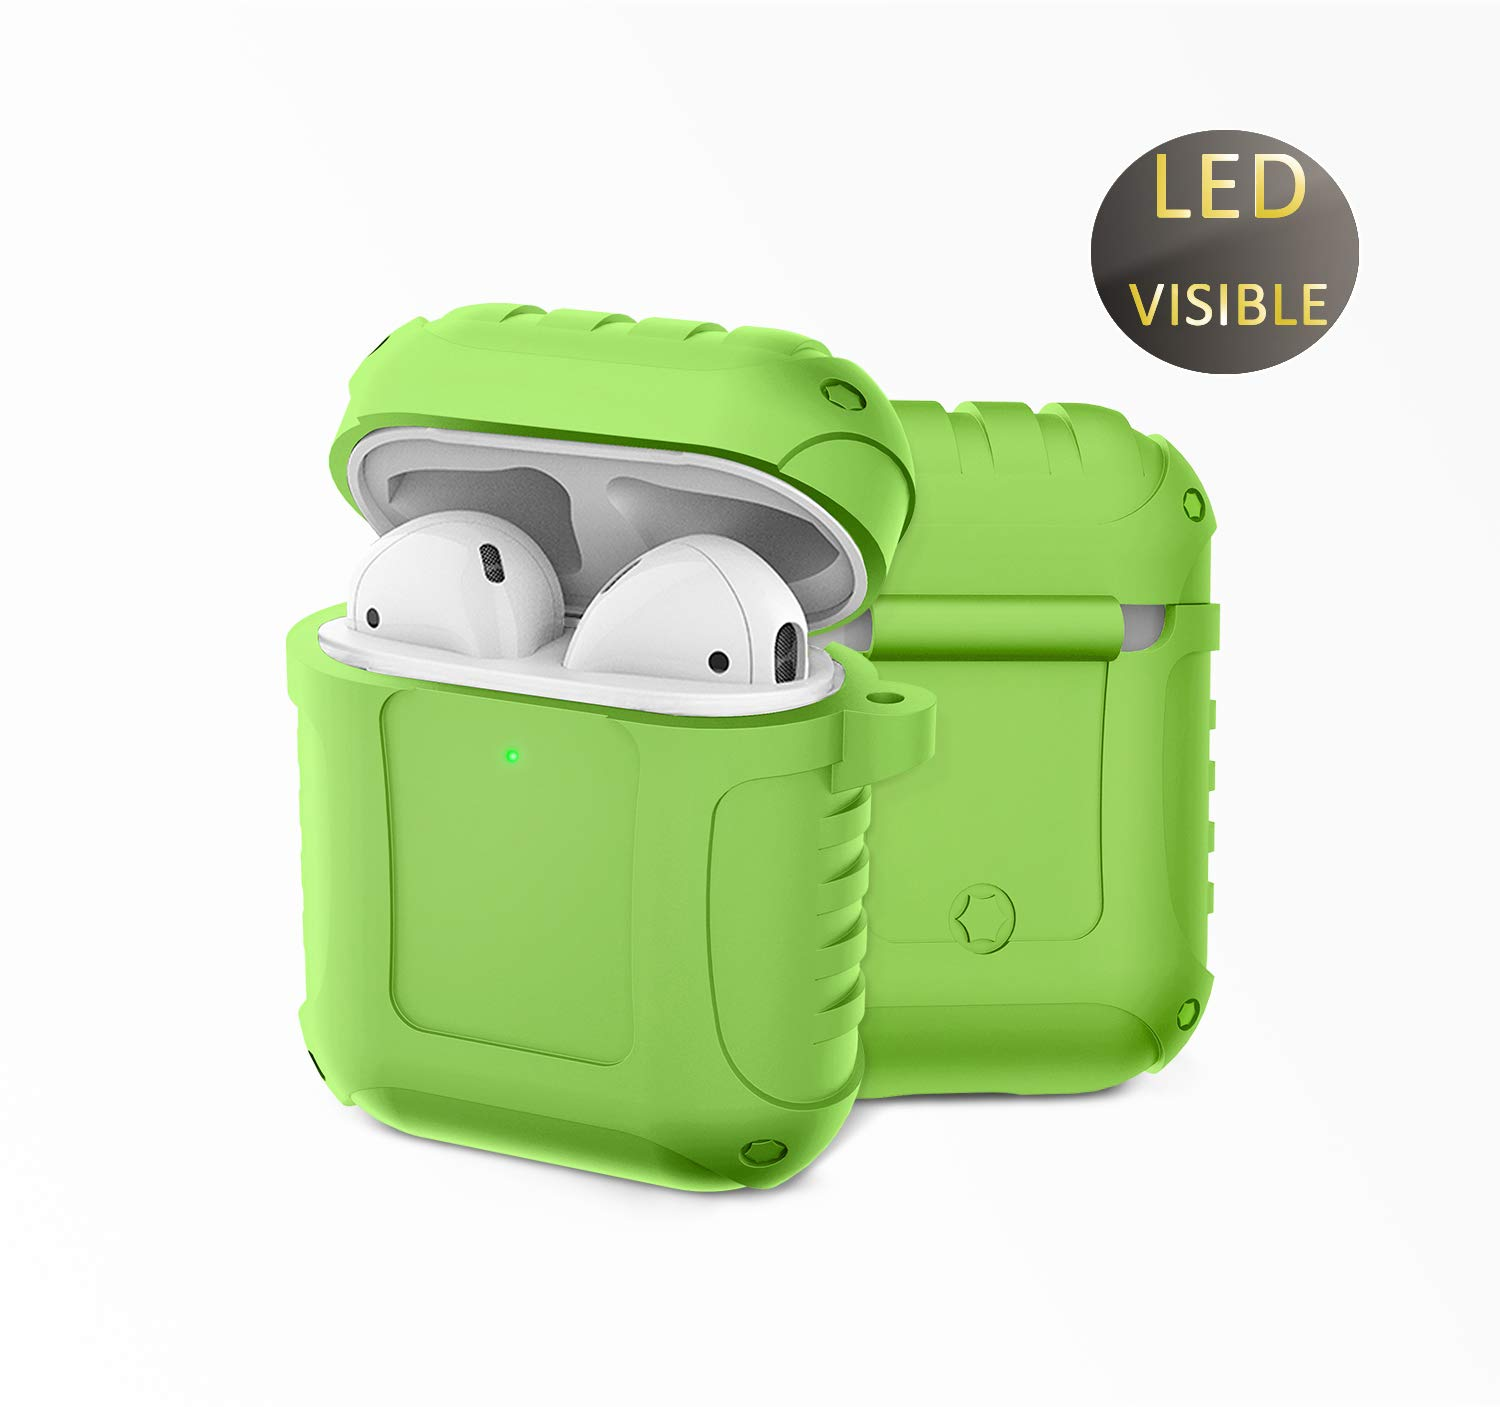 Airpods Case Protective Silicone Cover 1&2, Charging Case with Metal Keychain, Shockproof Scratch Resistant Earpods Case (Green)